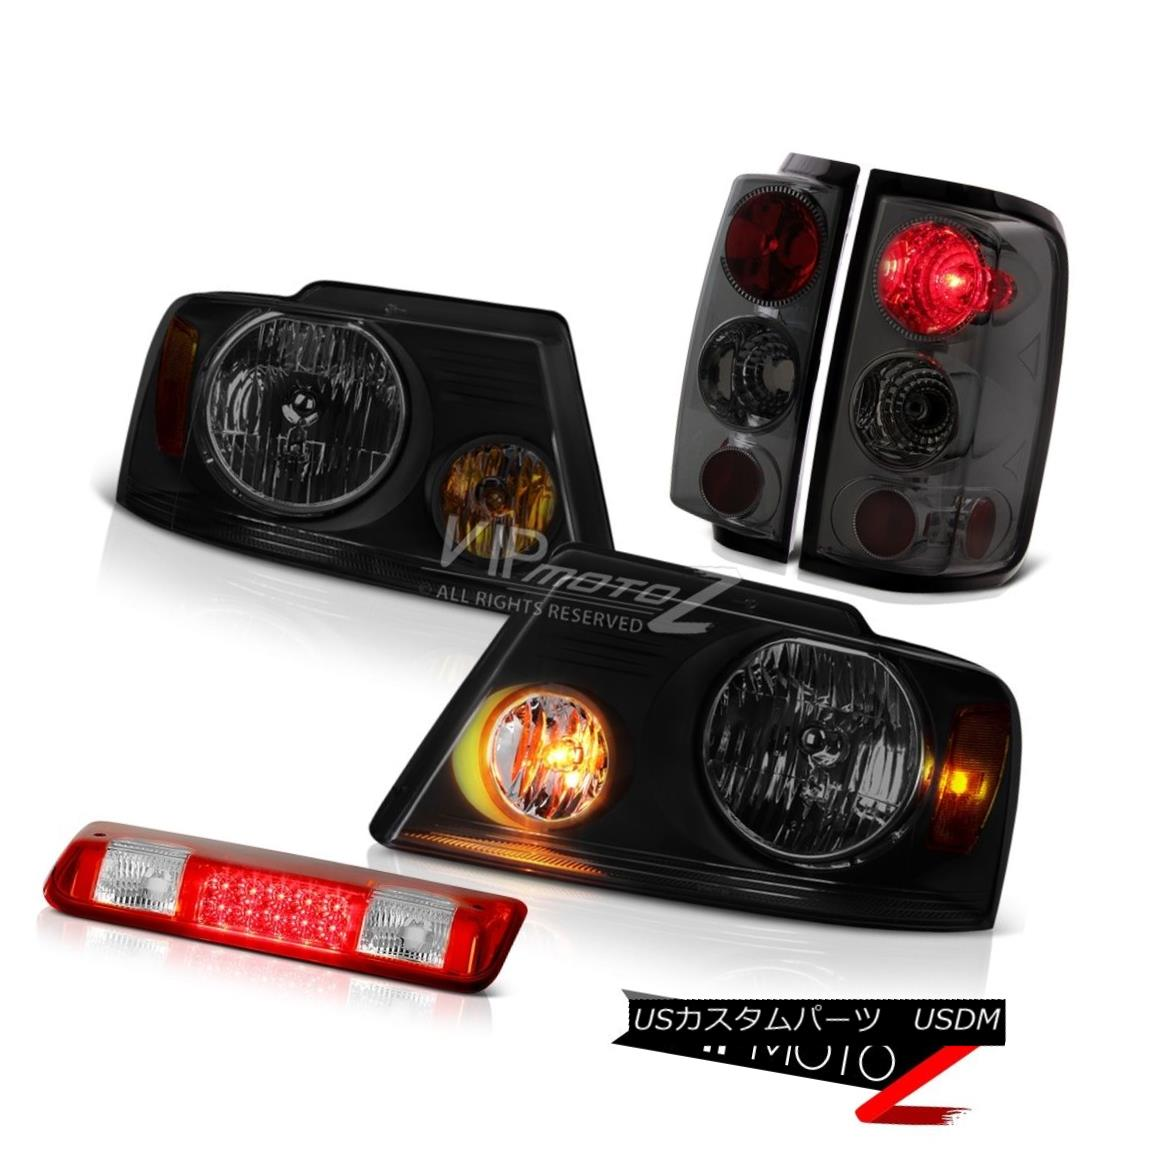 ヘッドライト 04-08 Ford F150 XLT Red Clear High Stop Lamp Headlamps Dark Smoke Taillamps LED 04-08 Ford F150 XLTレッドClearハイストップランプヘッドランプDark Smoke Taillamps LED